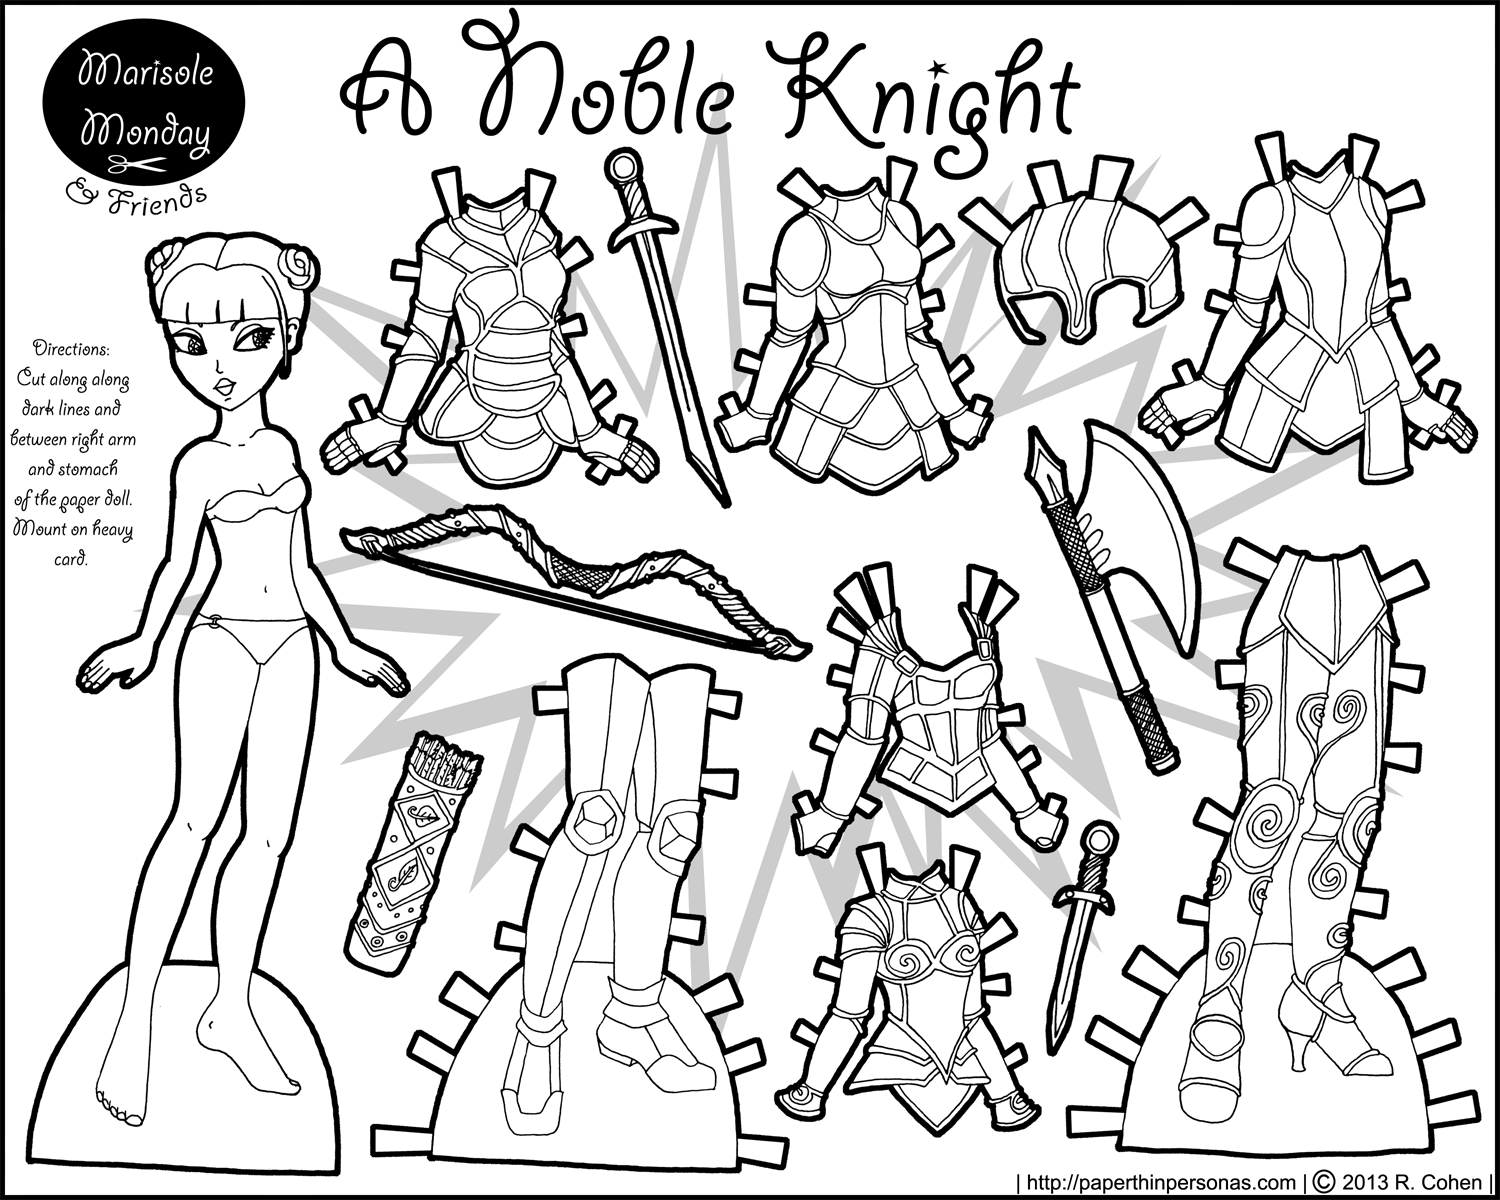 Marisole monday friends a noble knight paper thin for Paper doll coloring page